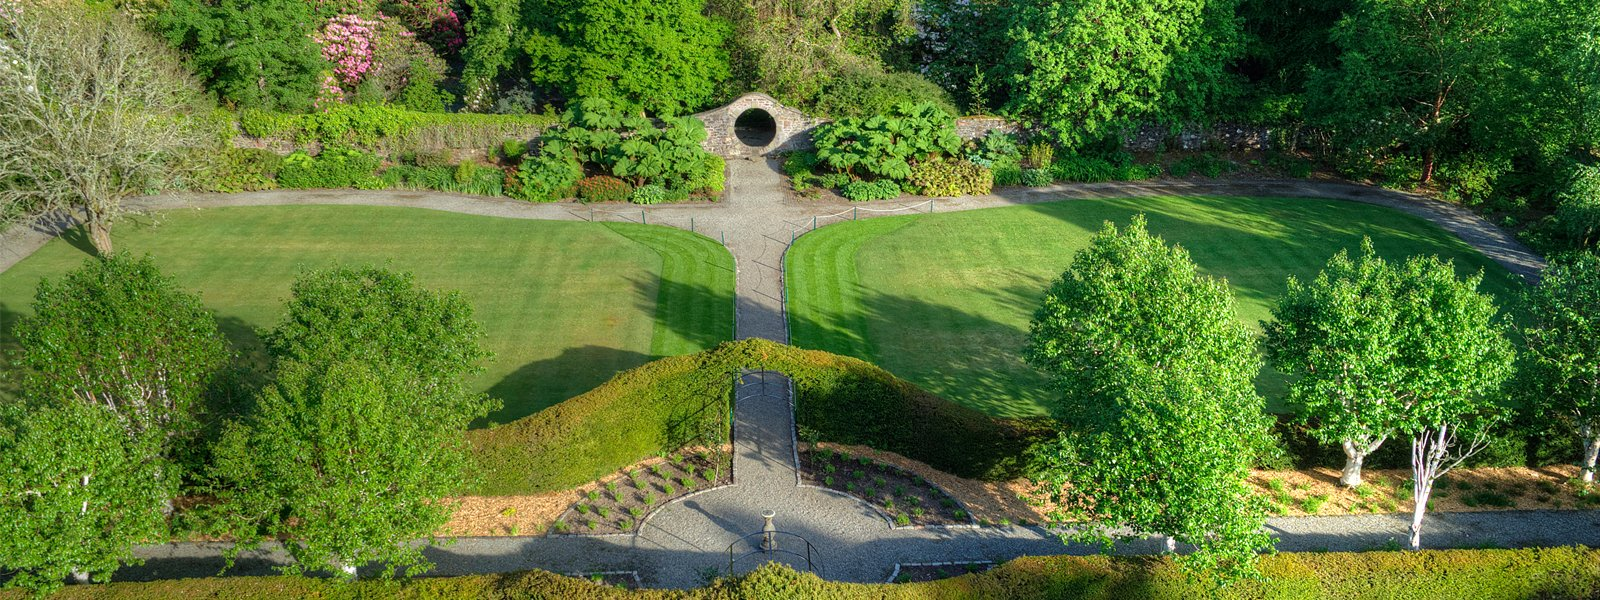 Aerial shot of the moongate in the walled garden at Ross Priory. Image courtesy of Aye in the Sky Aerial Photography